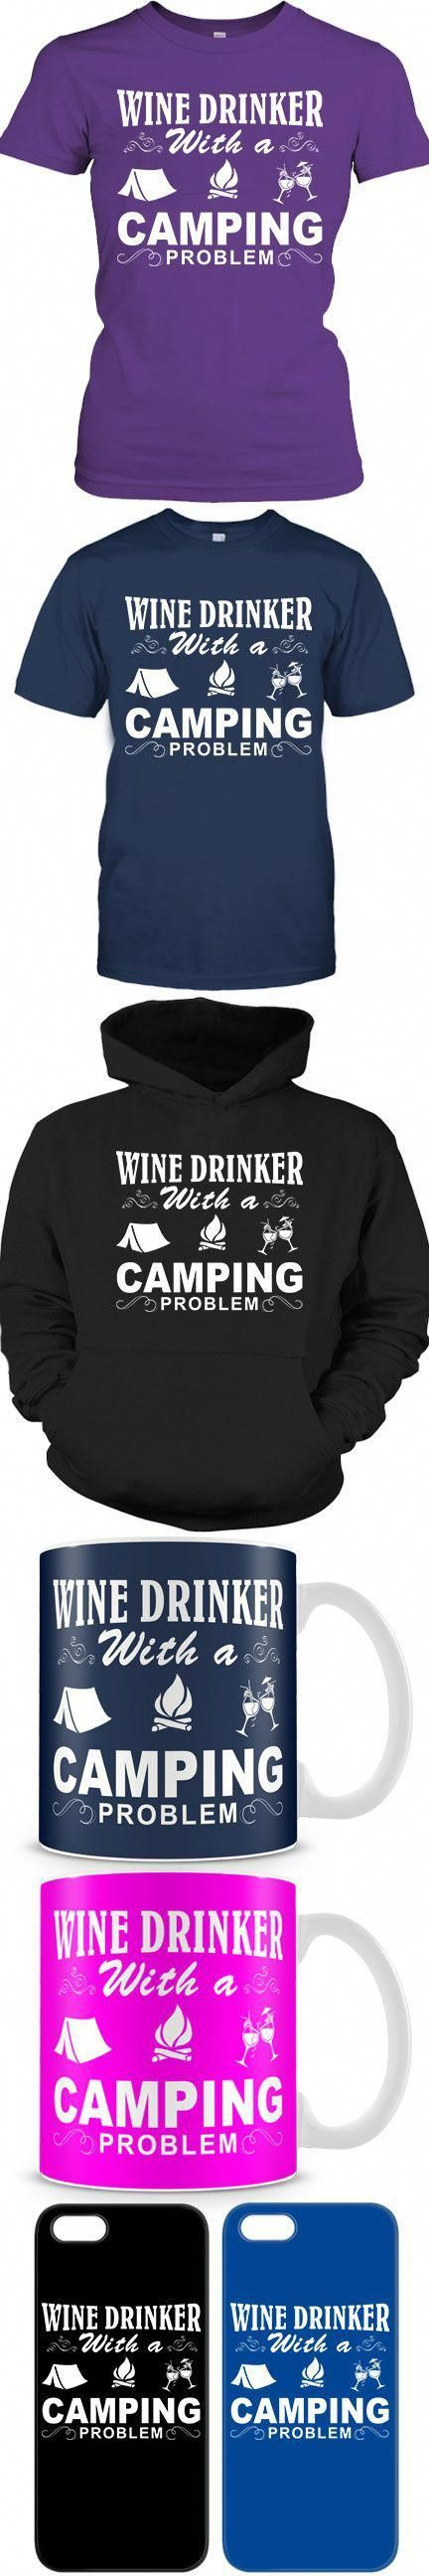 Wine drinker with a camping problem Camping glamping, Go